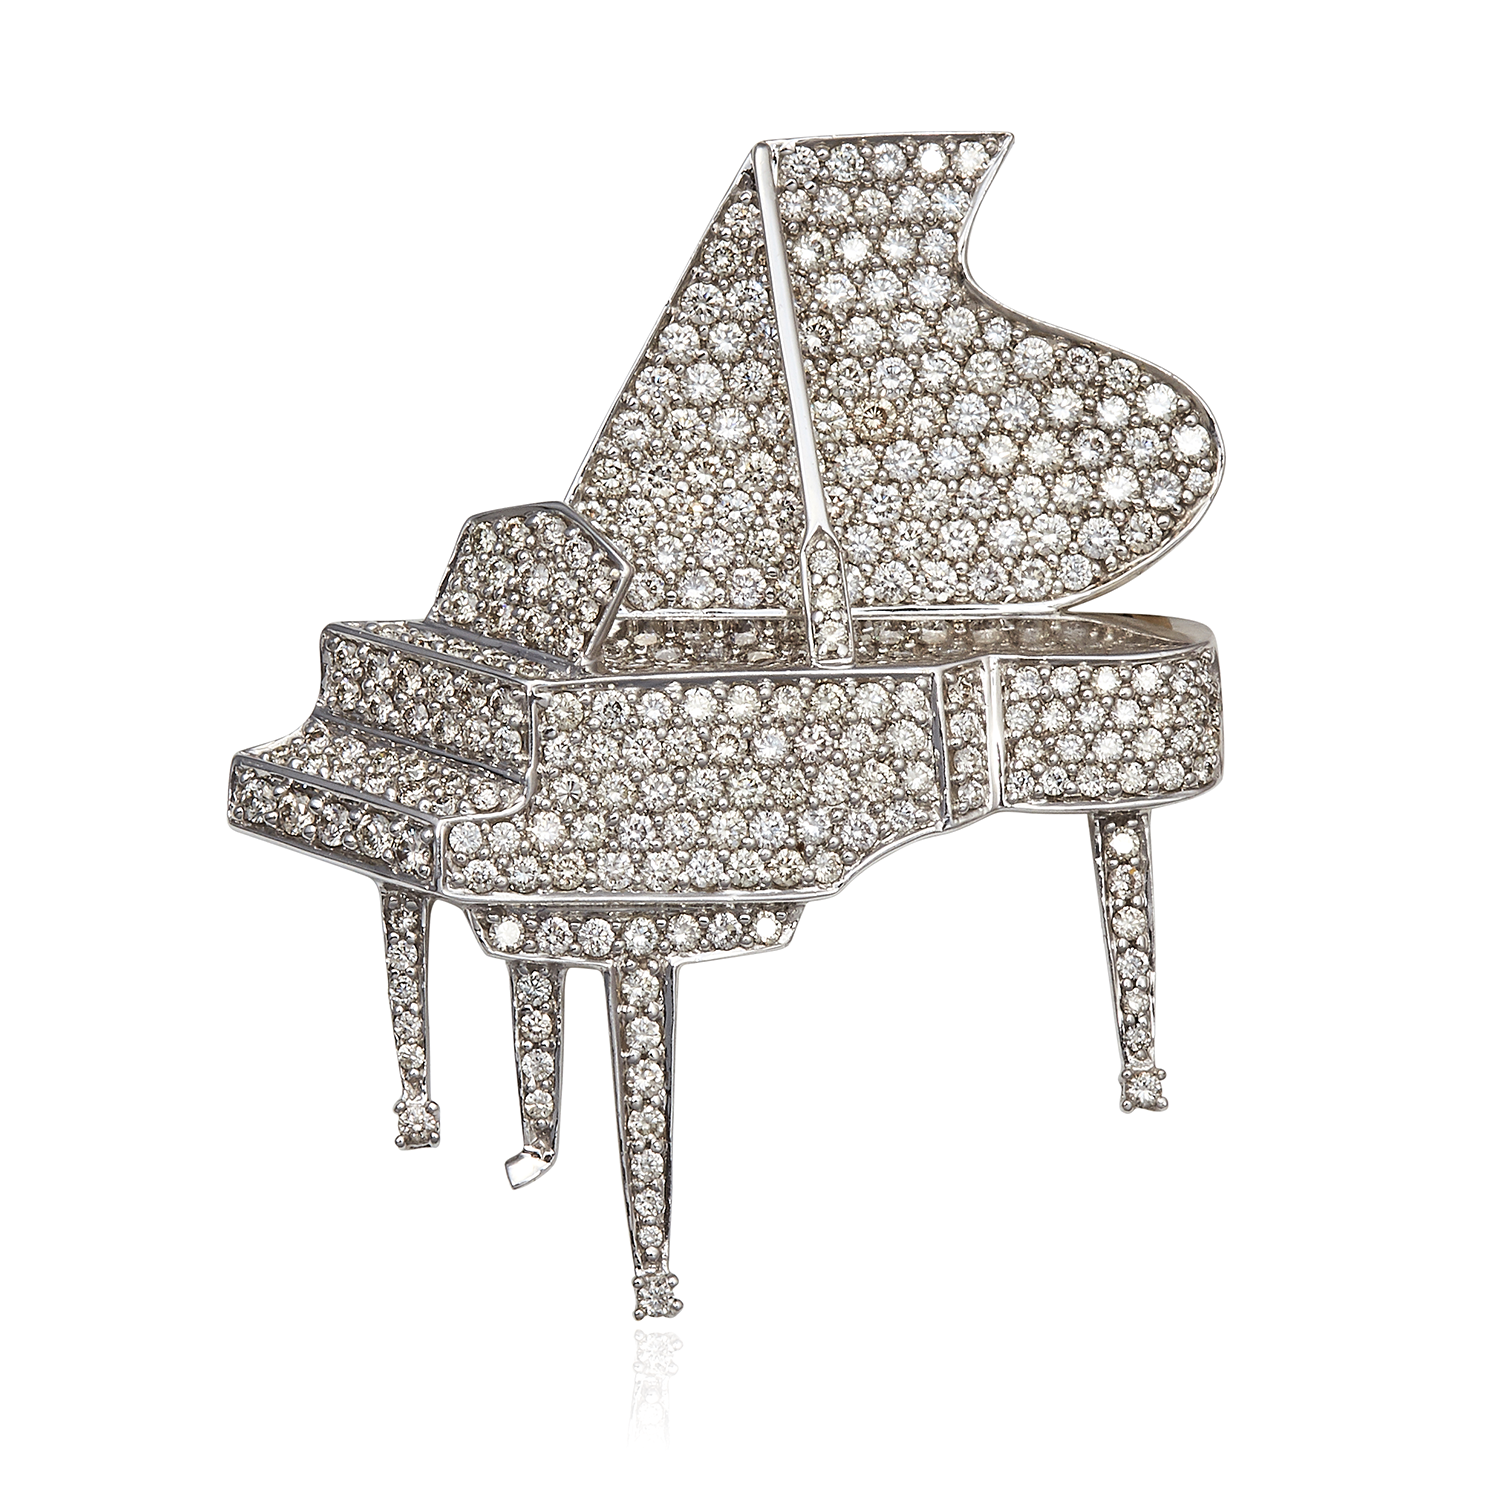 Los 56 - A DIAMOND PIANO BROOCH in 18ct white gold, jewelled all over with diamonds totalling approximately